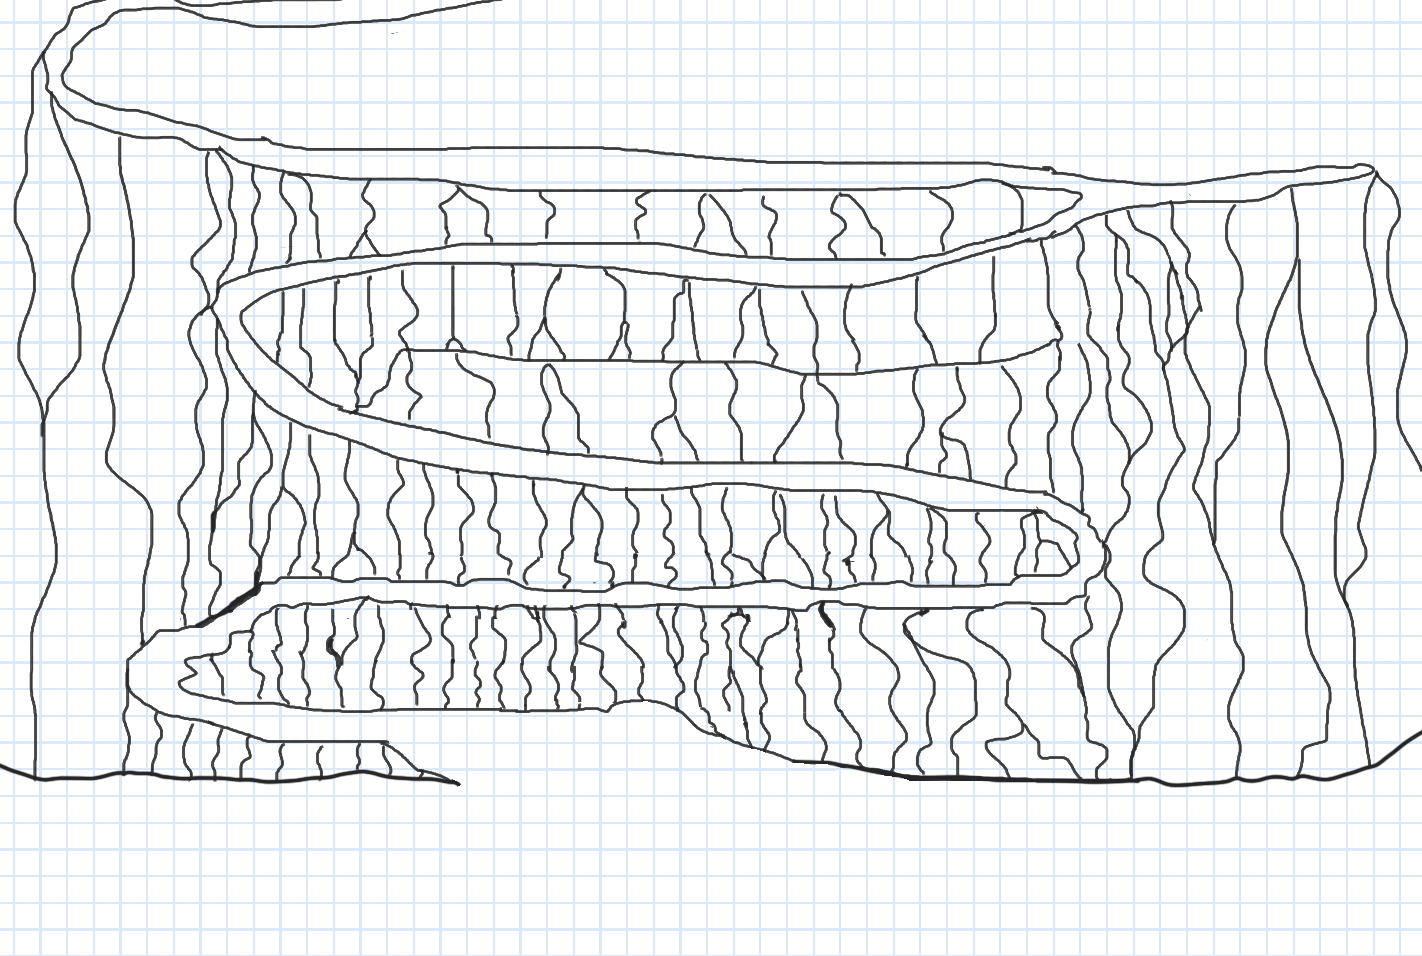 Rough sketch of a switchback trail